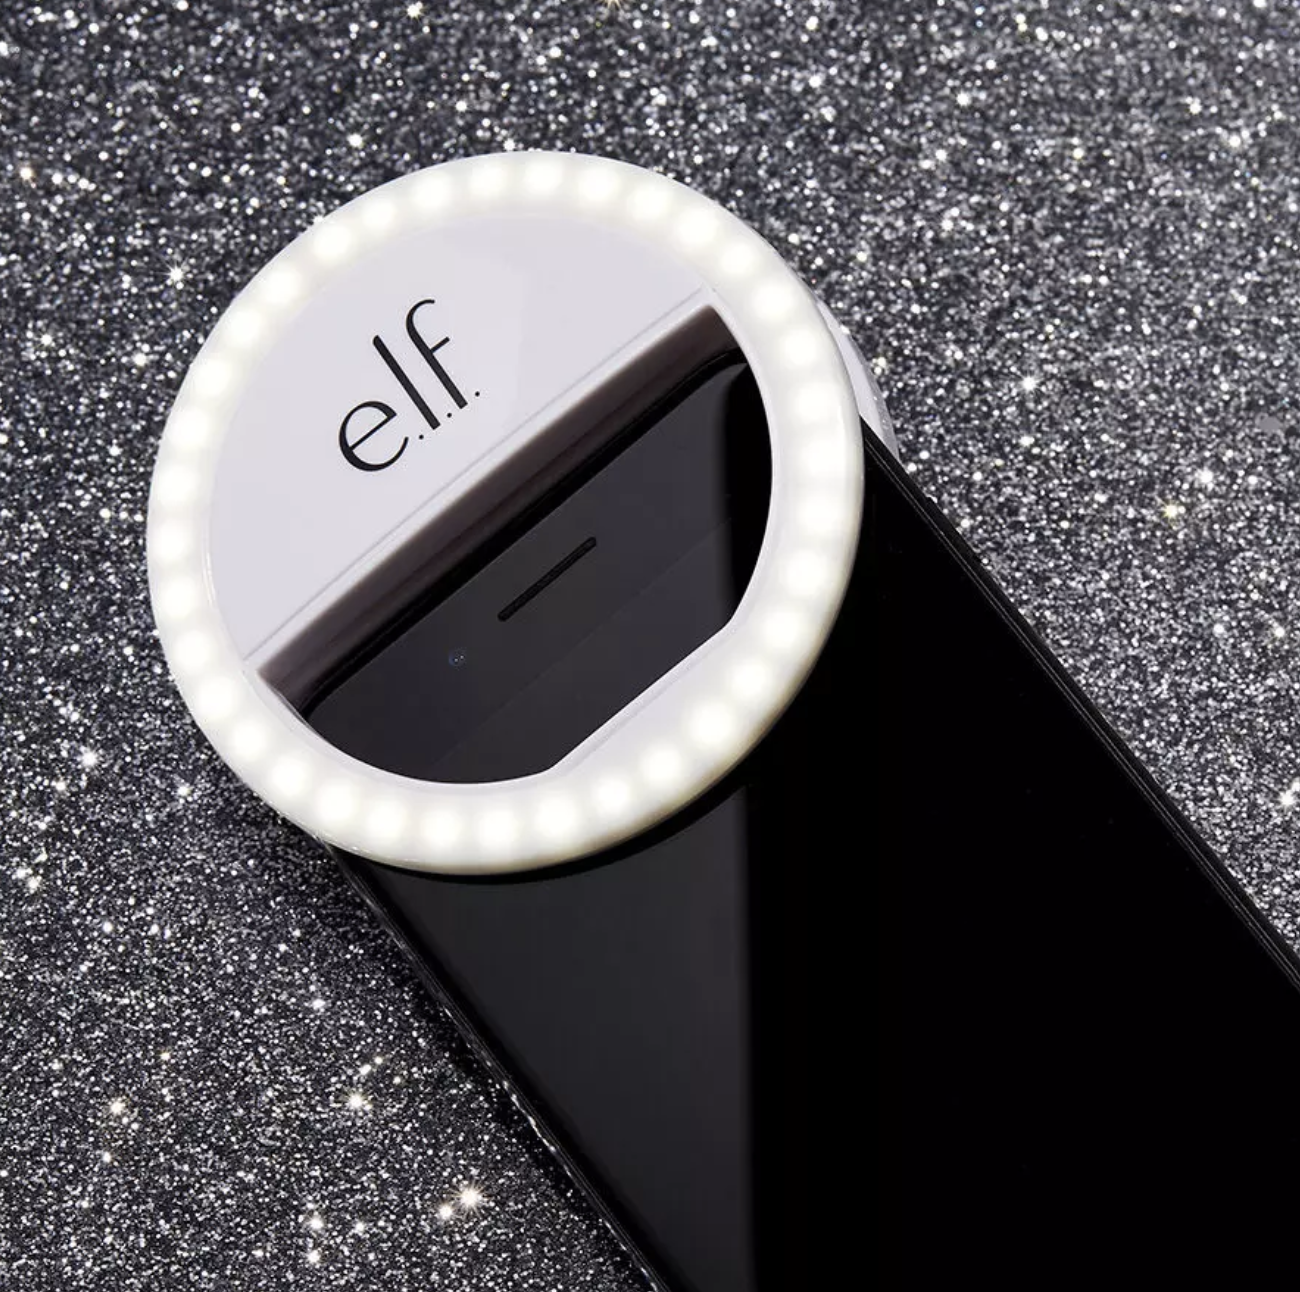 the selfie ring light attached to the top of a phone